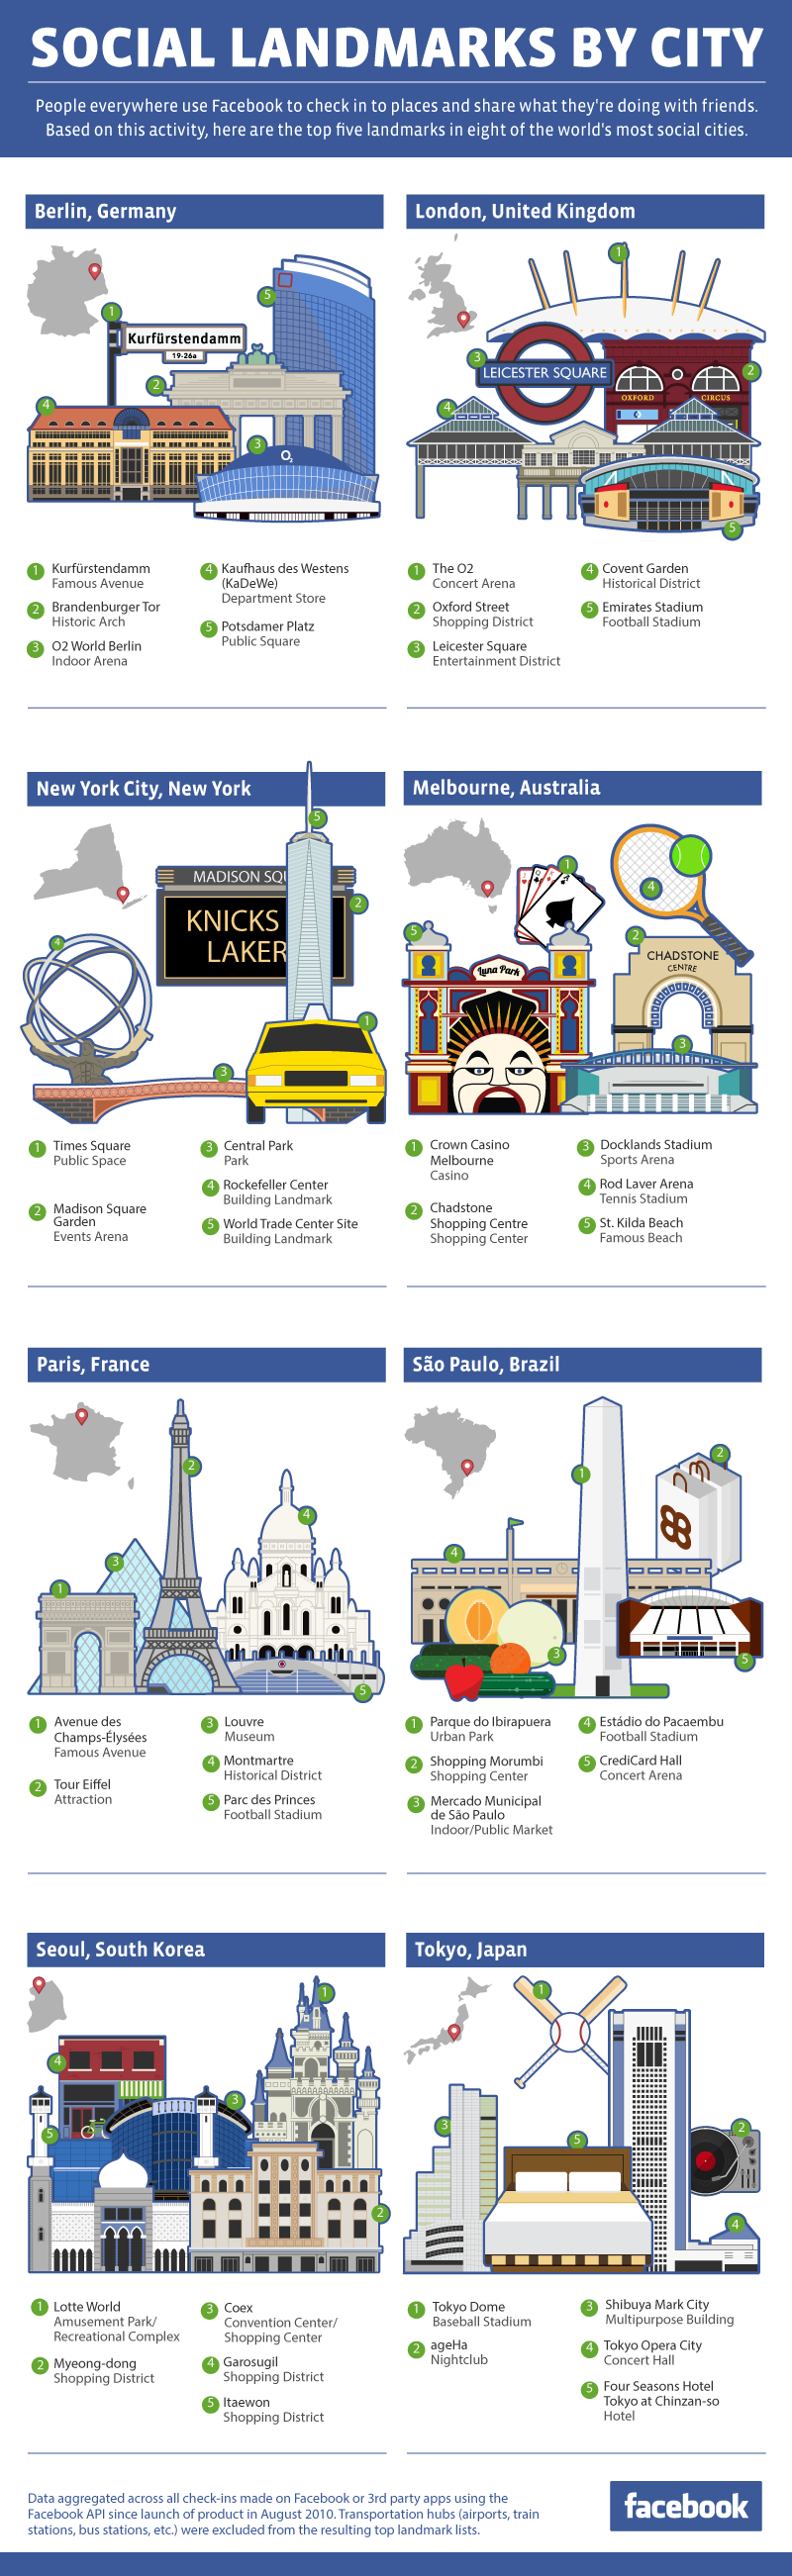 Most Popular Social Landmarks In The World - Infographic